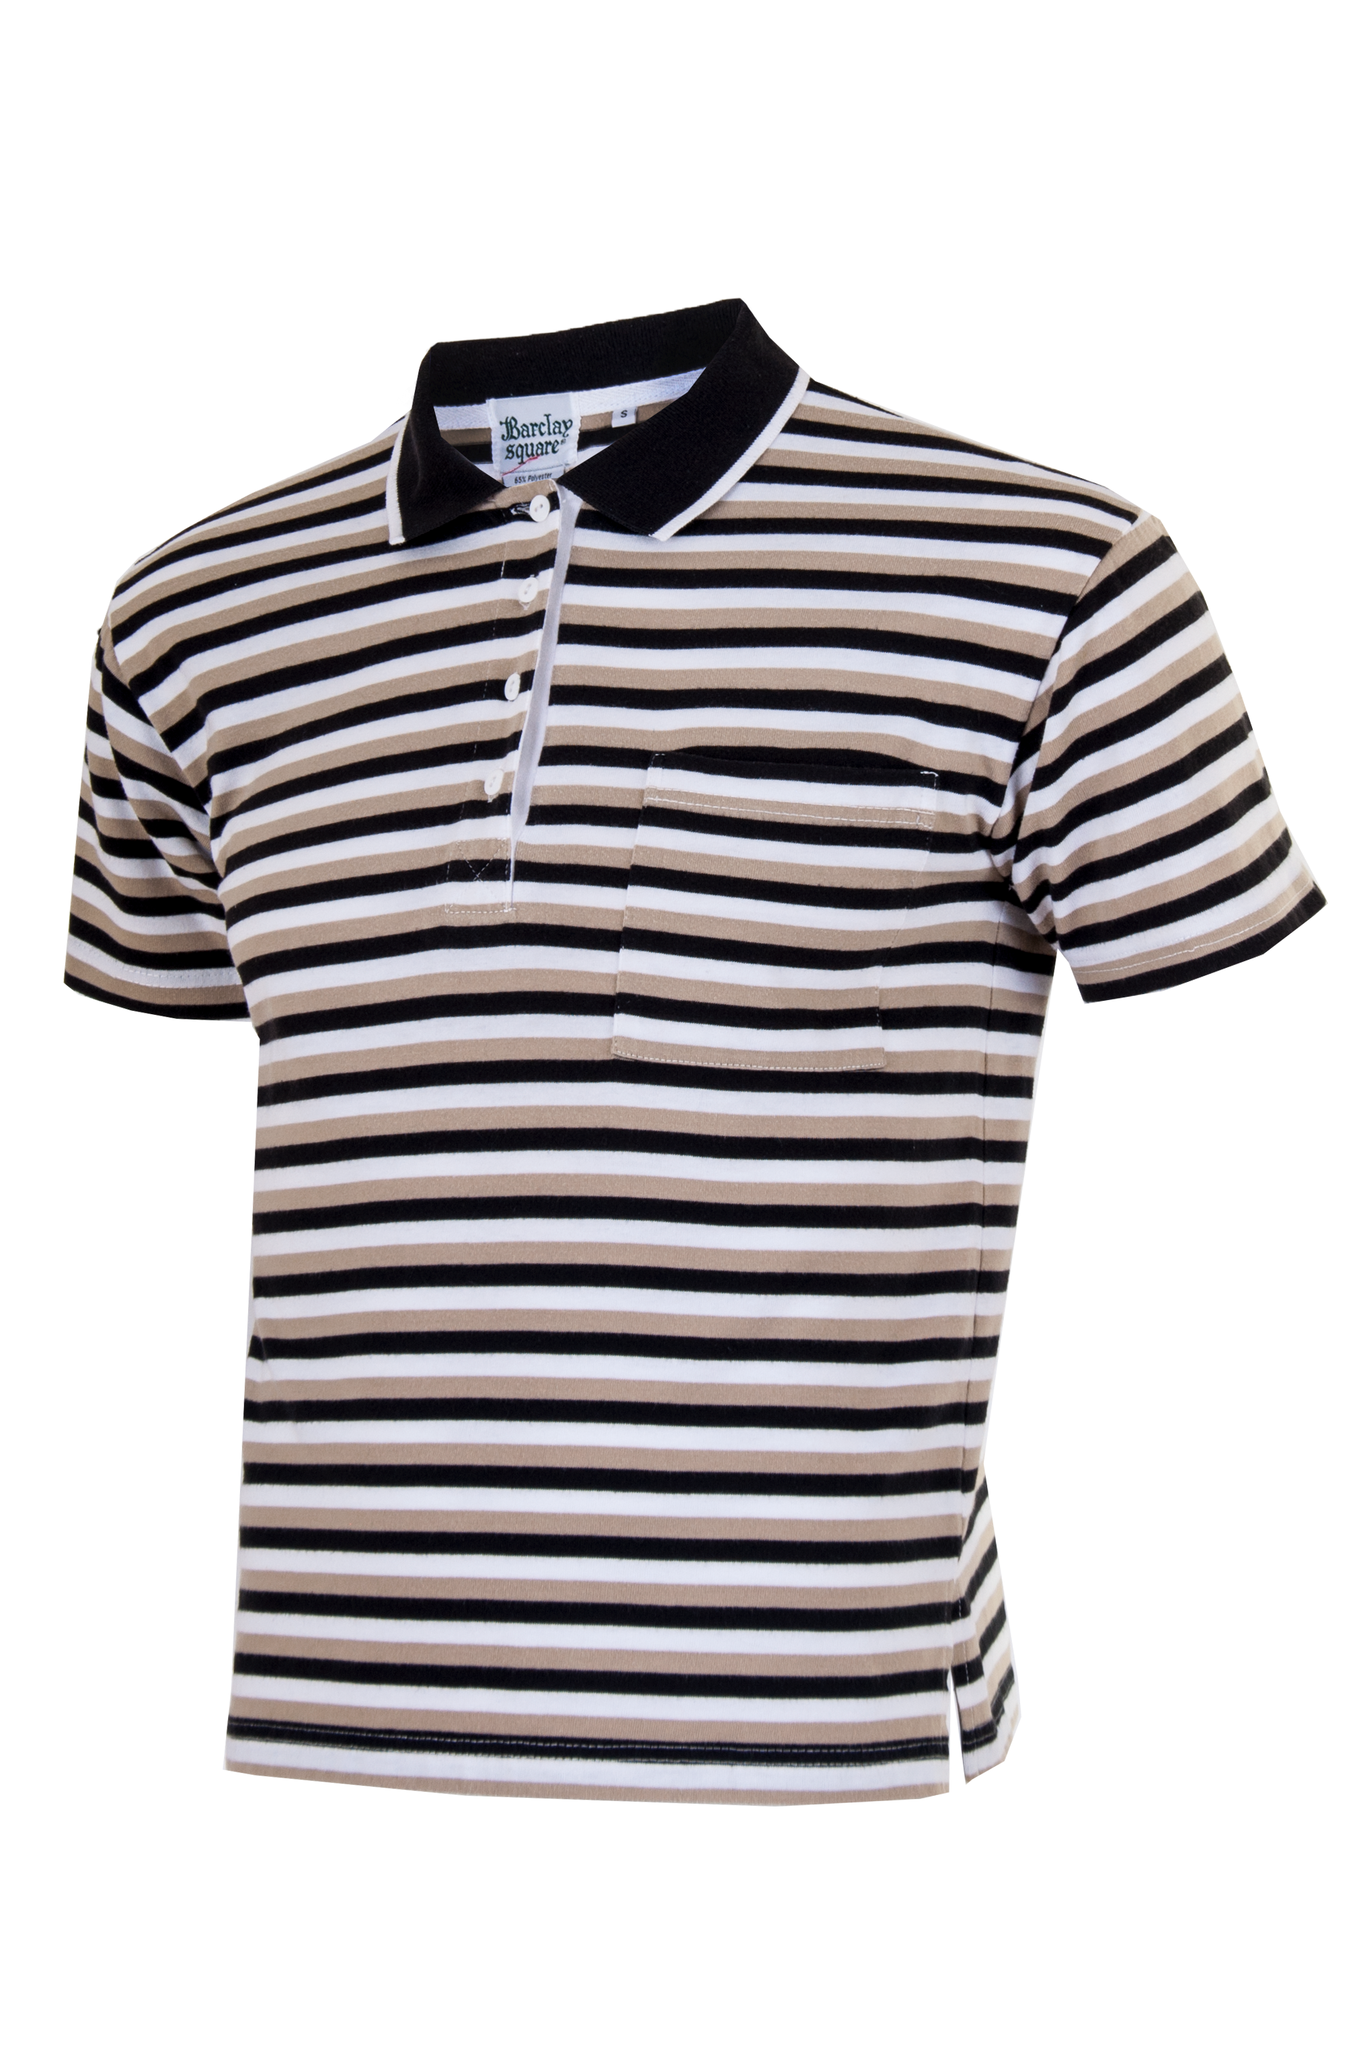 vintage polo striped shirt